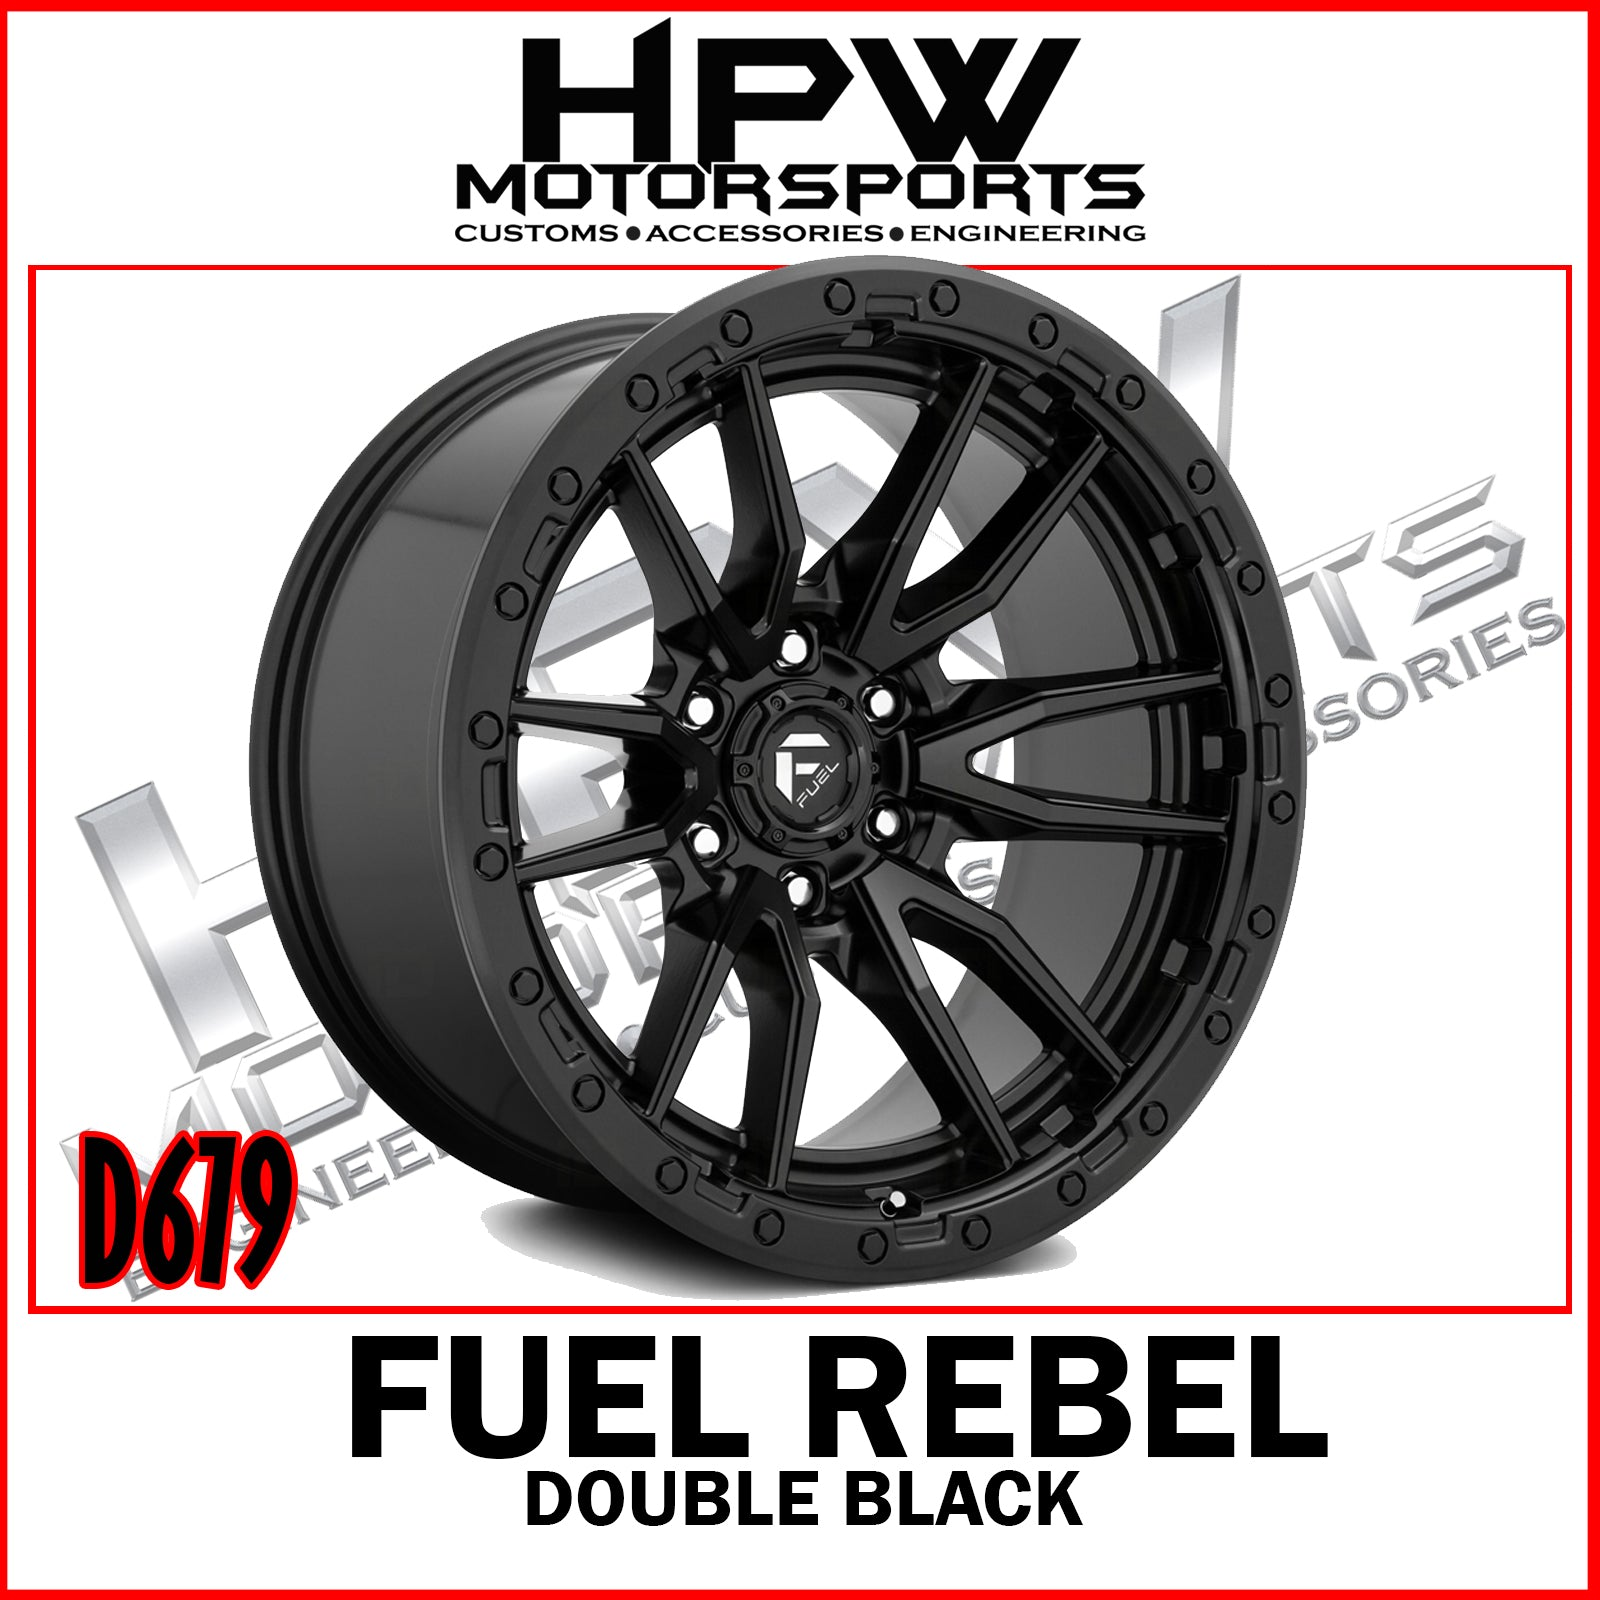 D679 REBEL - DOUBLE BLACK - Set of 4